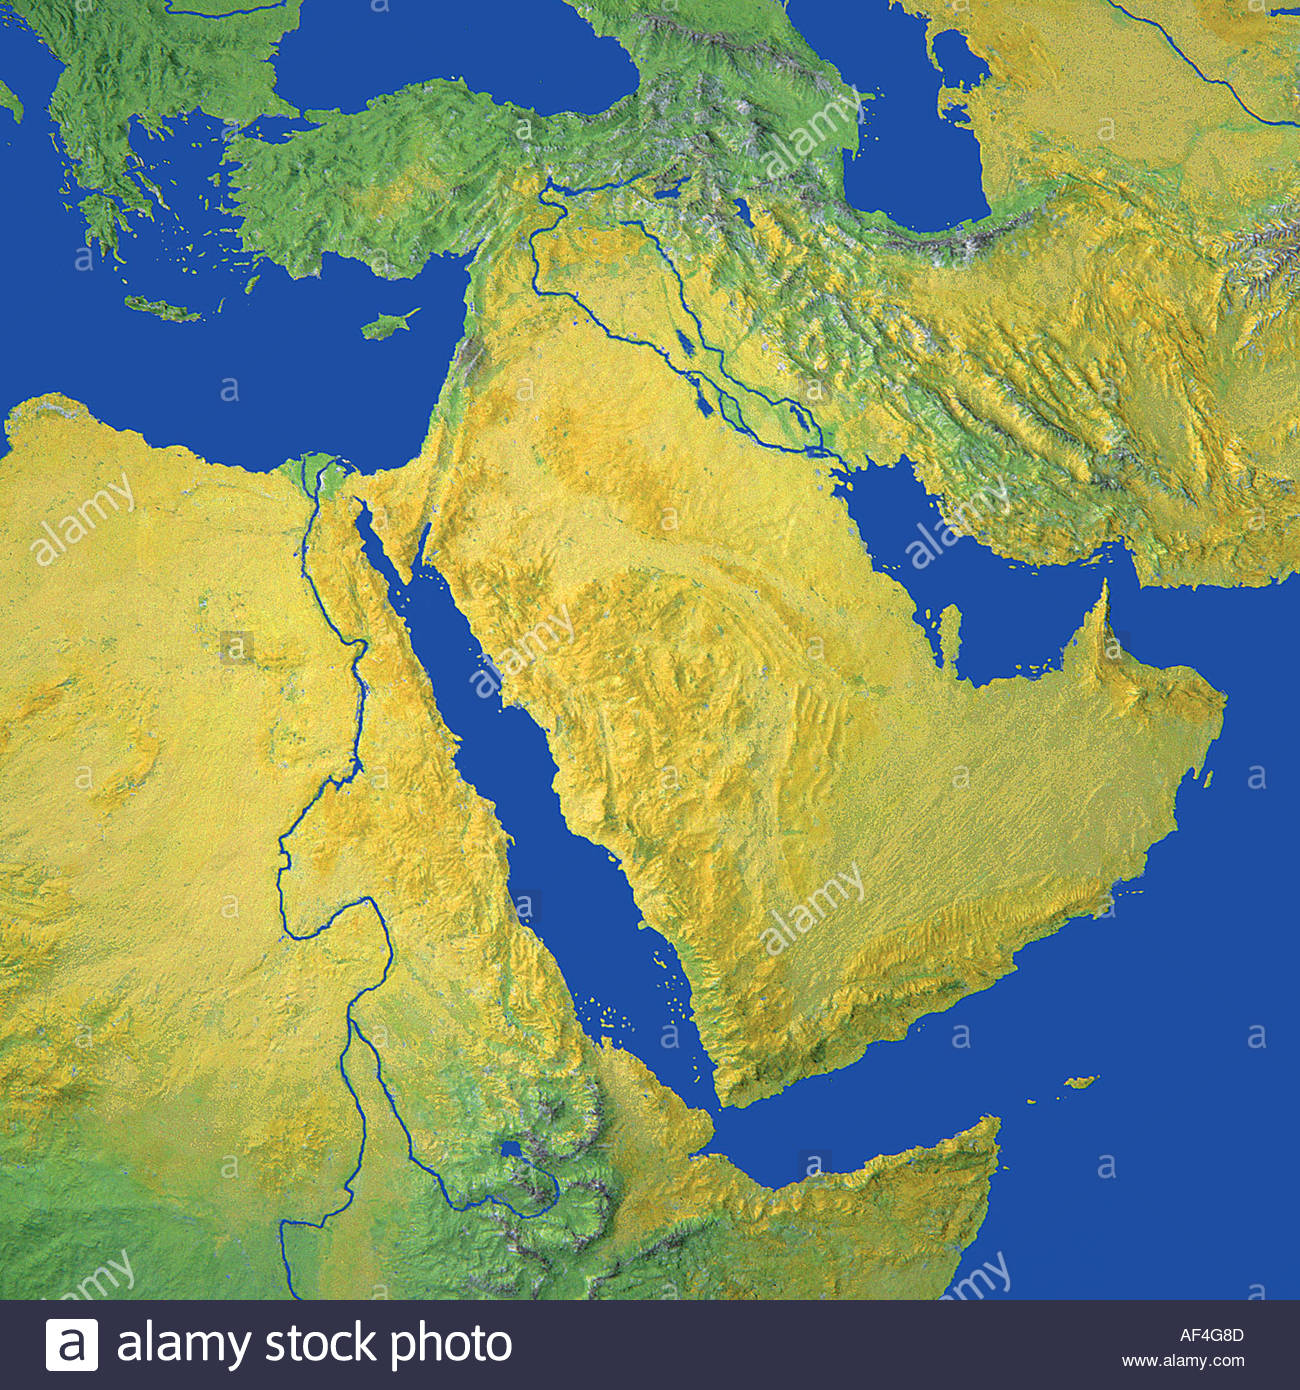 Map maps globe globes middle east turkey iraq saudi arabia egypt map maps globe globes middle east turkey iraq saudi arabia egypt north africa gumiabroncs Choice Image